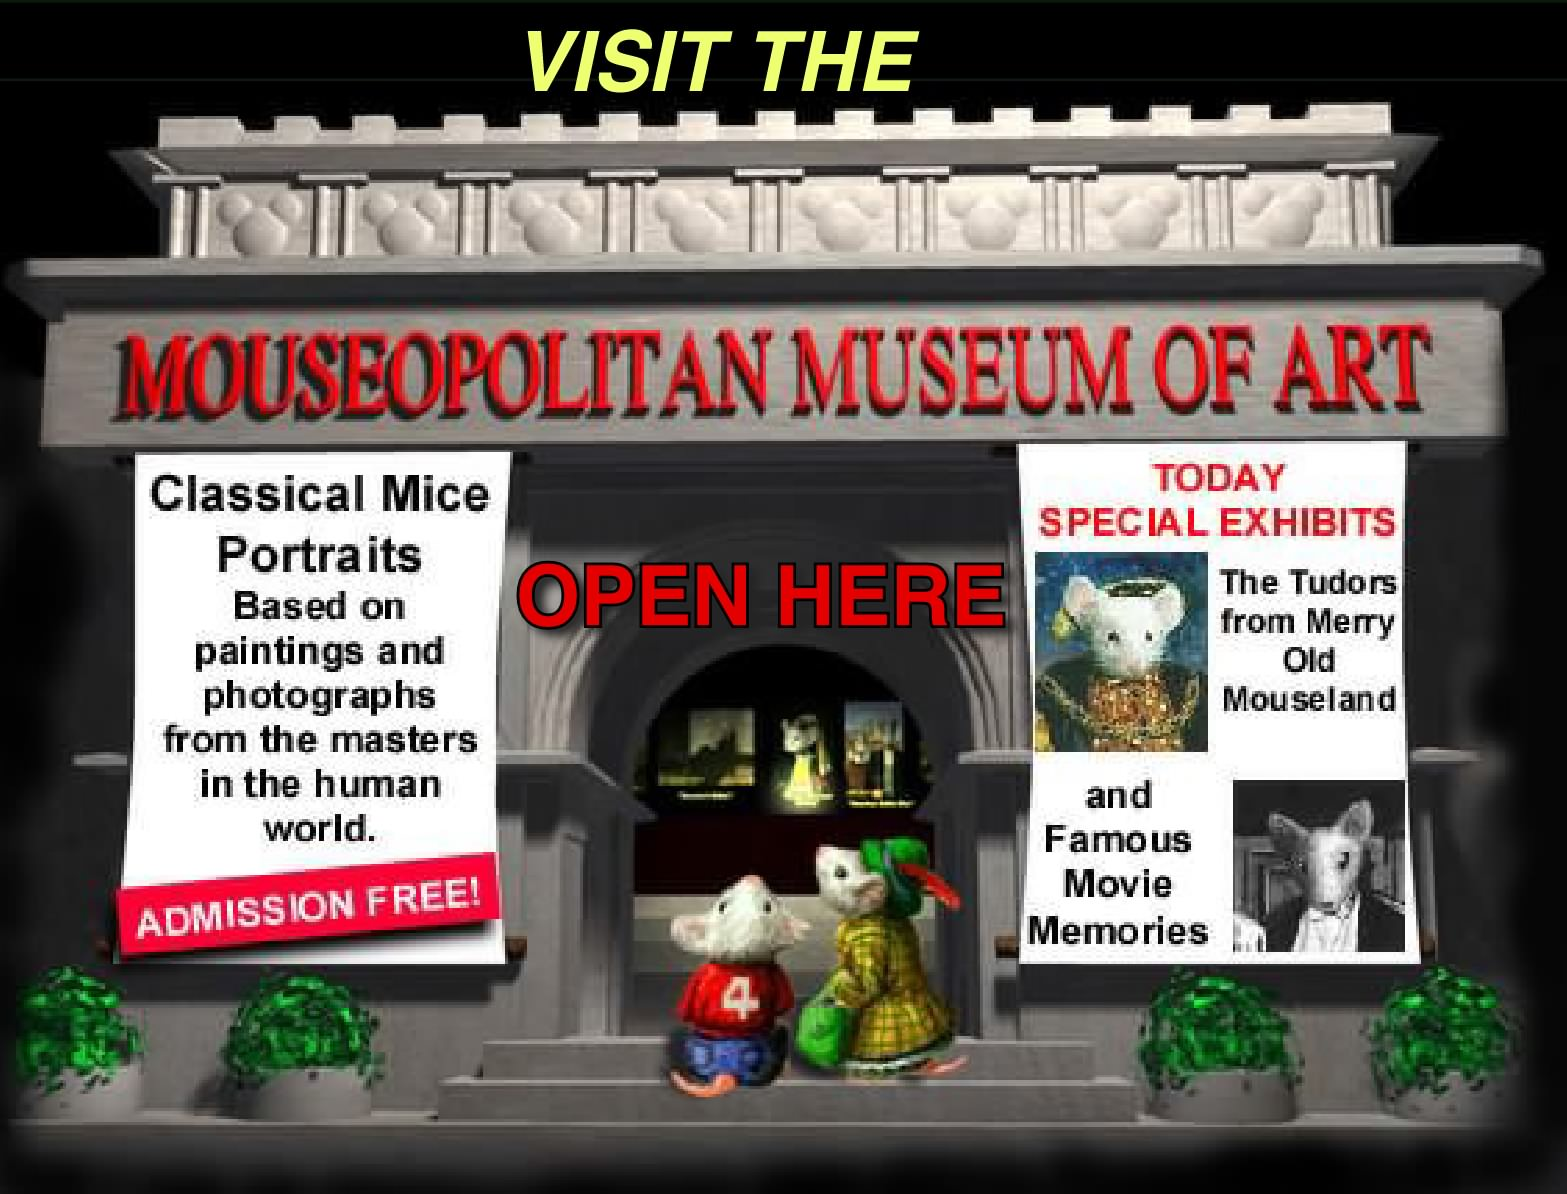 Mouseopolitan Museum of Art by Alan F. Beck